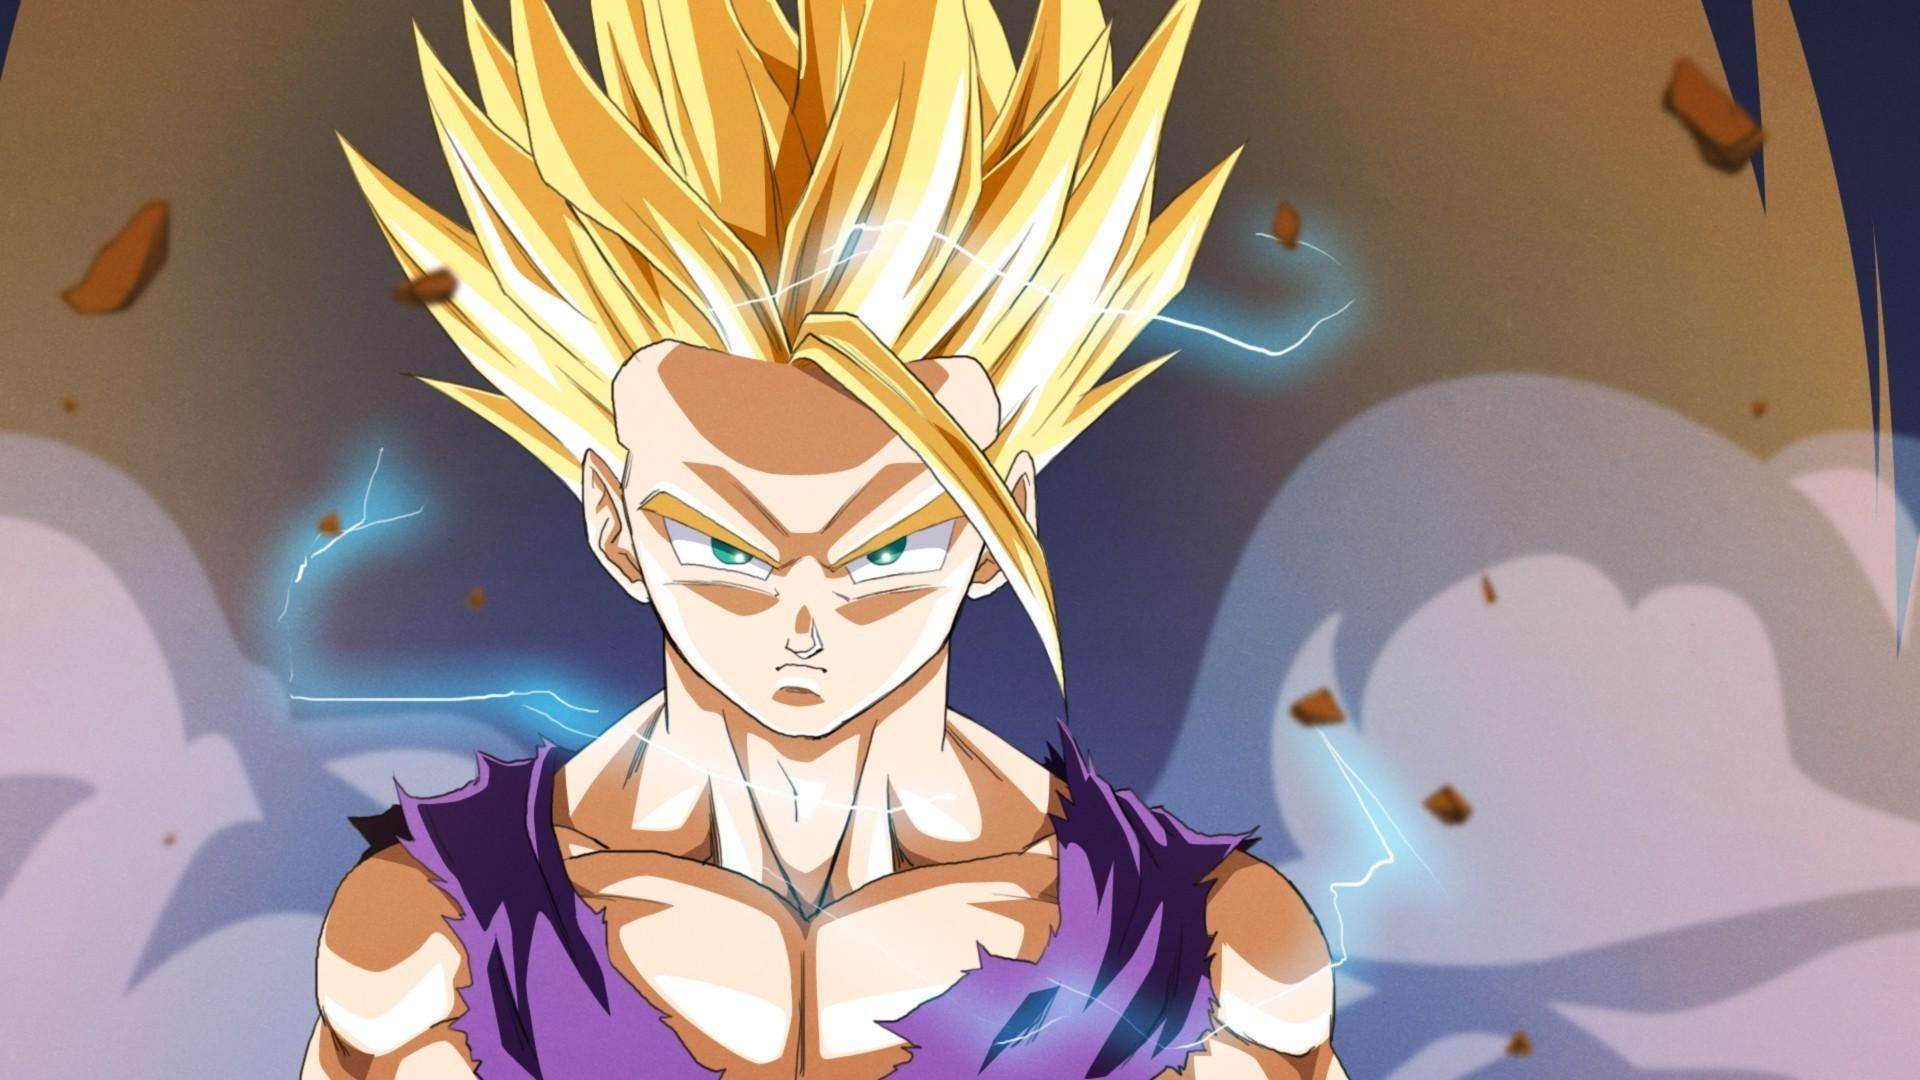 Son Gohan Wallpapers For Android Apk Download